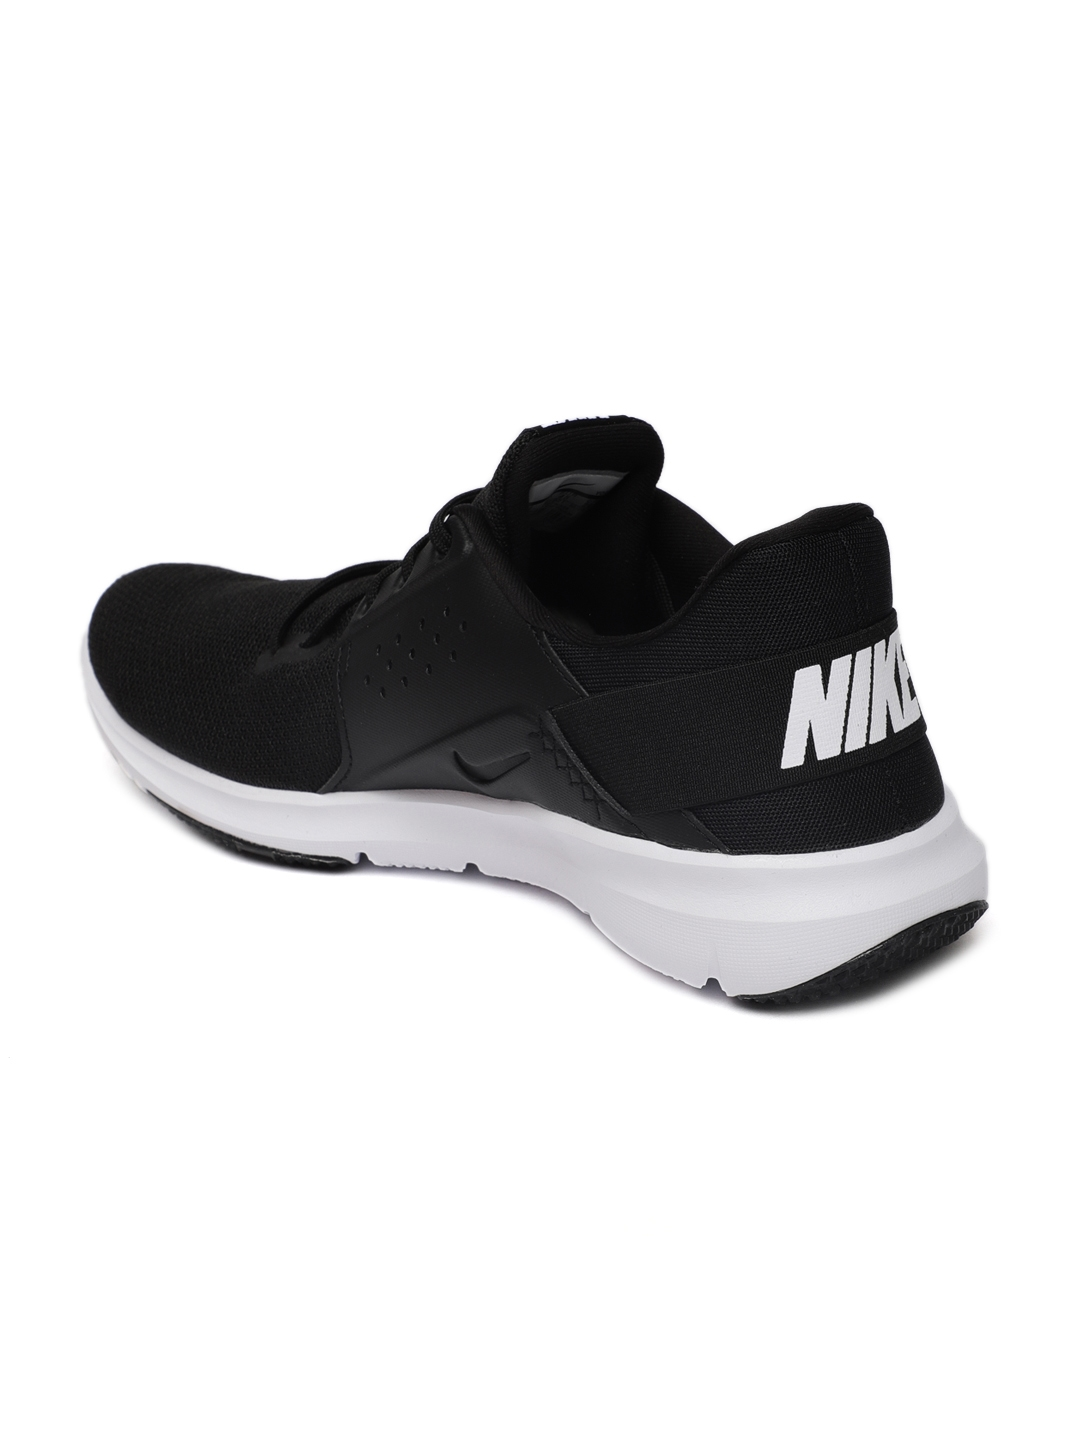 a7d6ee5084b58 Buy Nike Men Black Flex Control 3 Training Shoes - Sports Shoes for ...